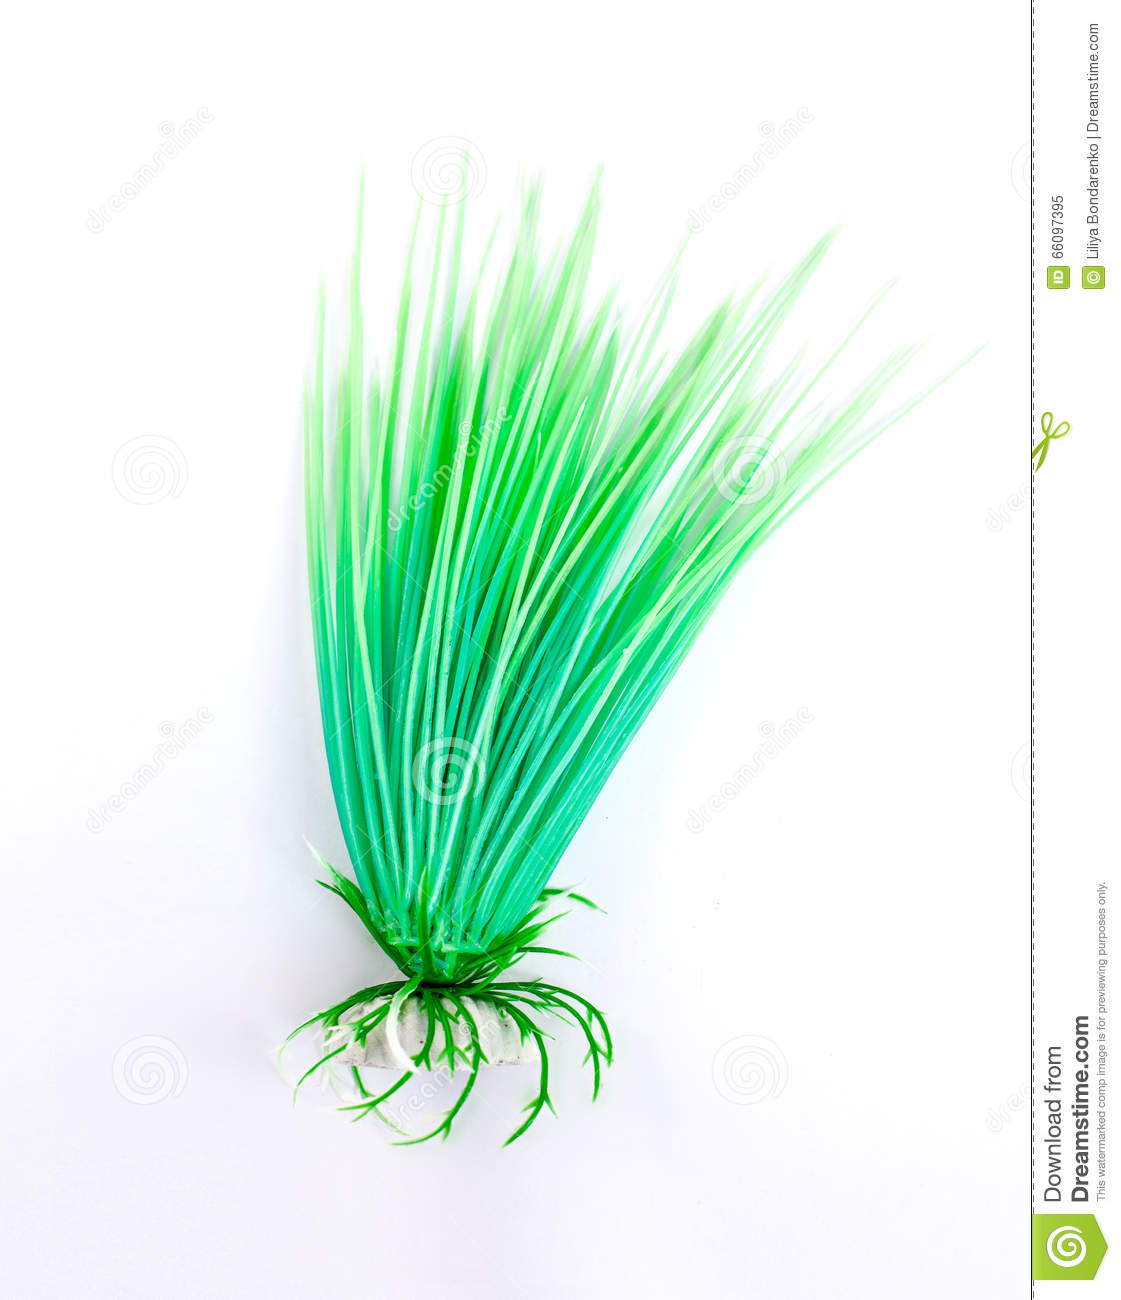 Fish bowl plants on white background stock photo image for Fish bowl plants